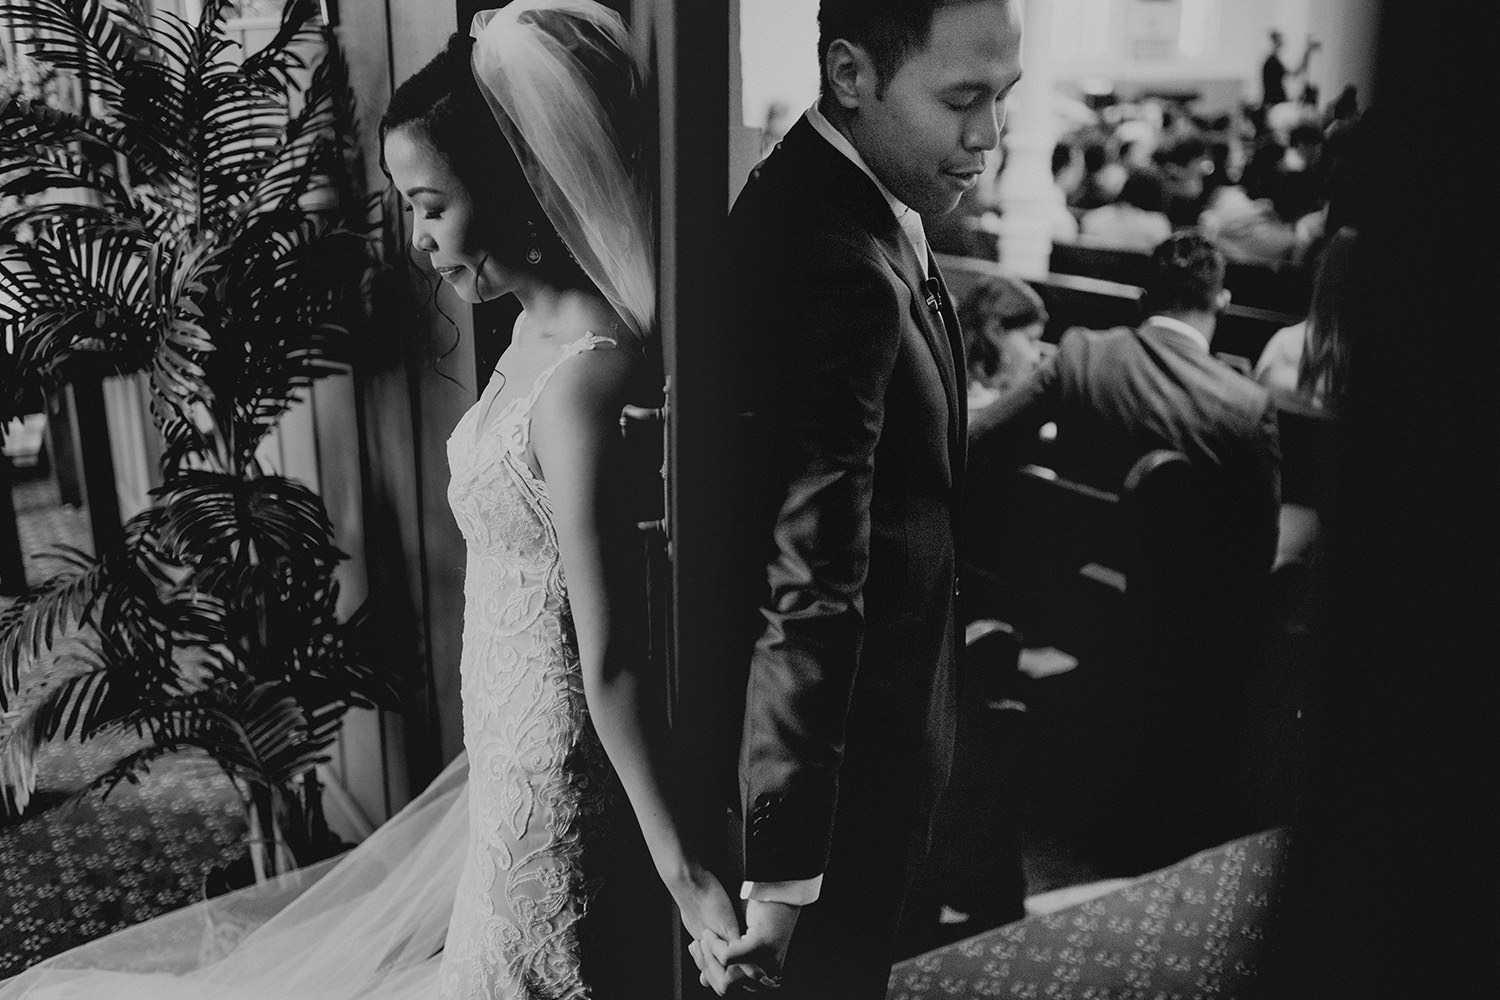 Asian bride and groom back-to-back praying together before their wedding